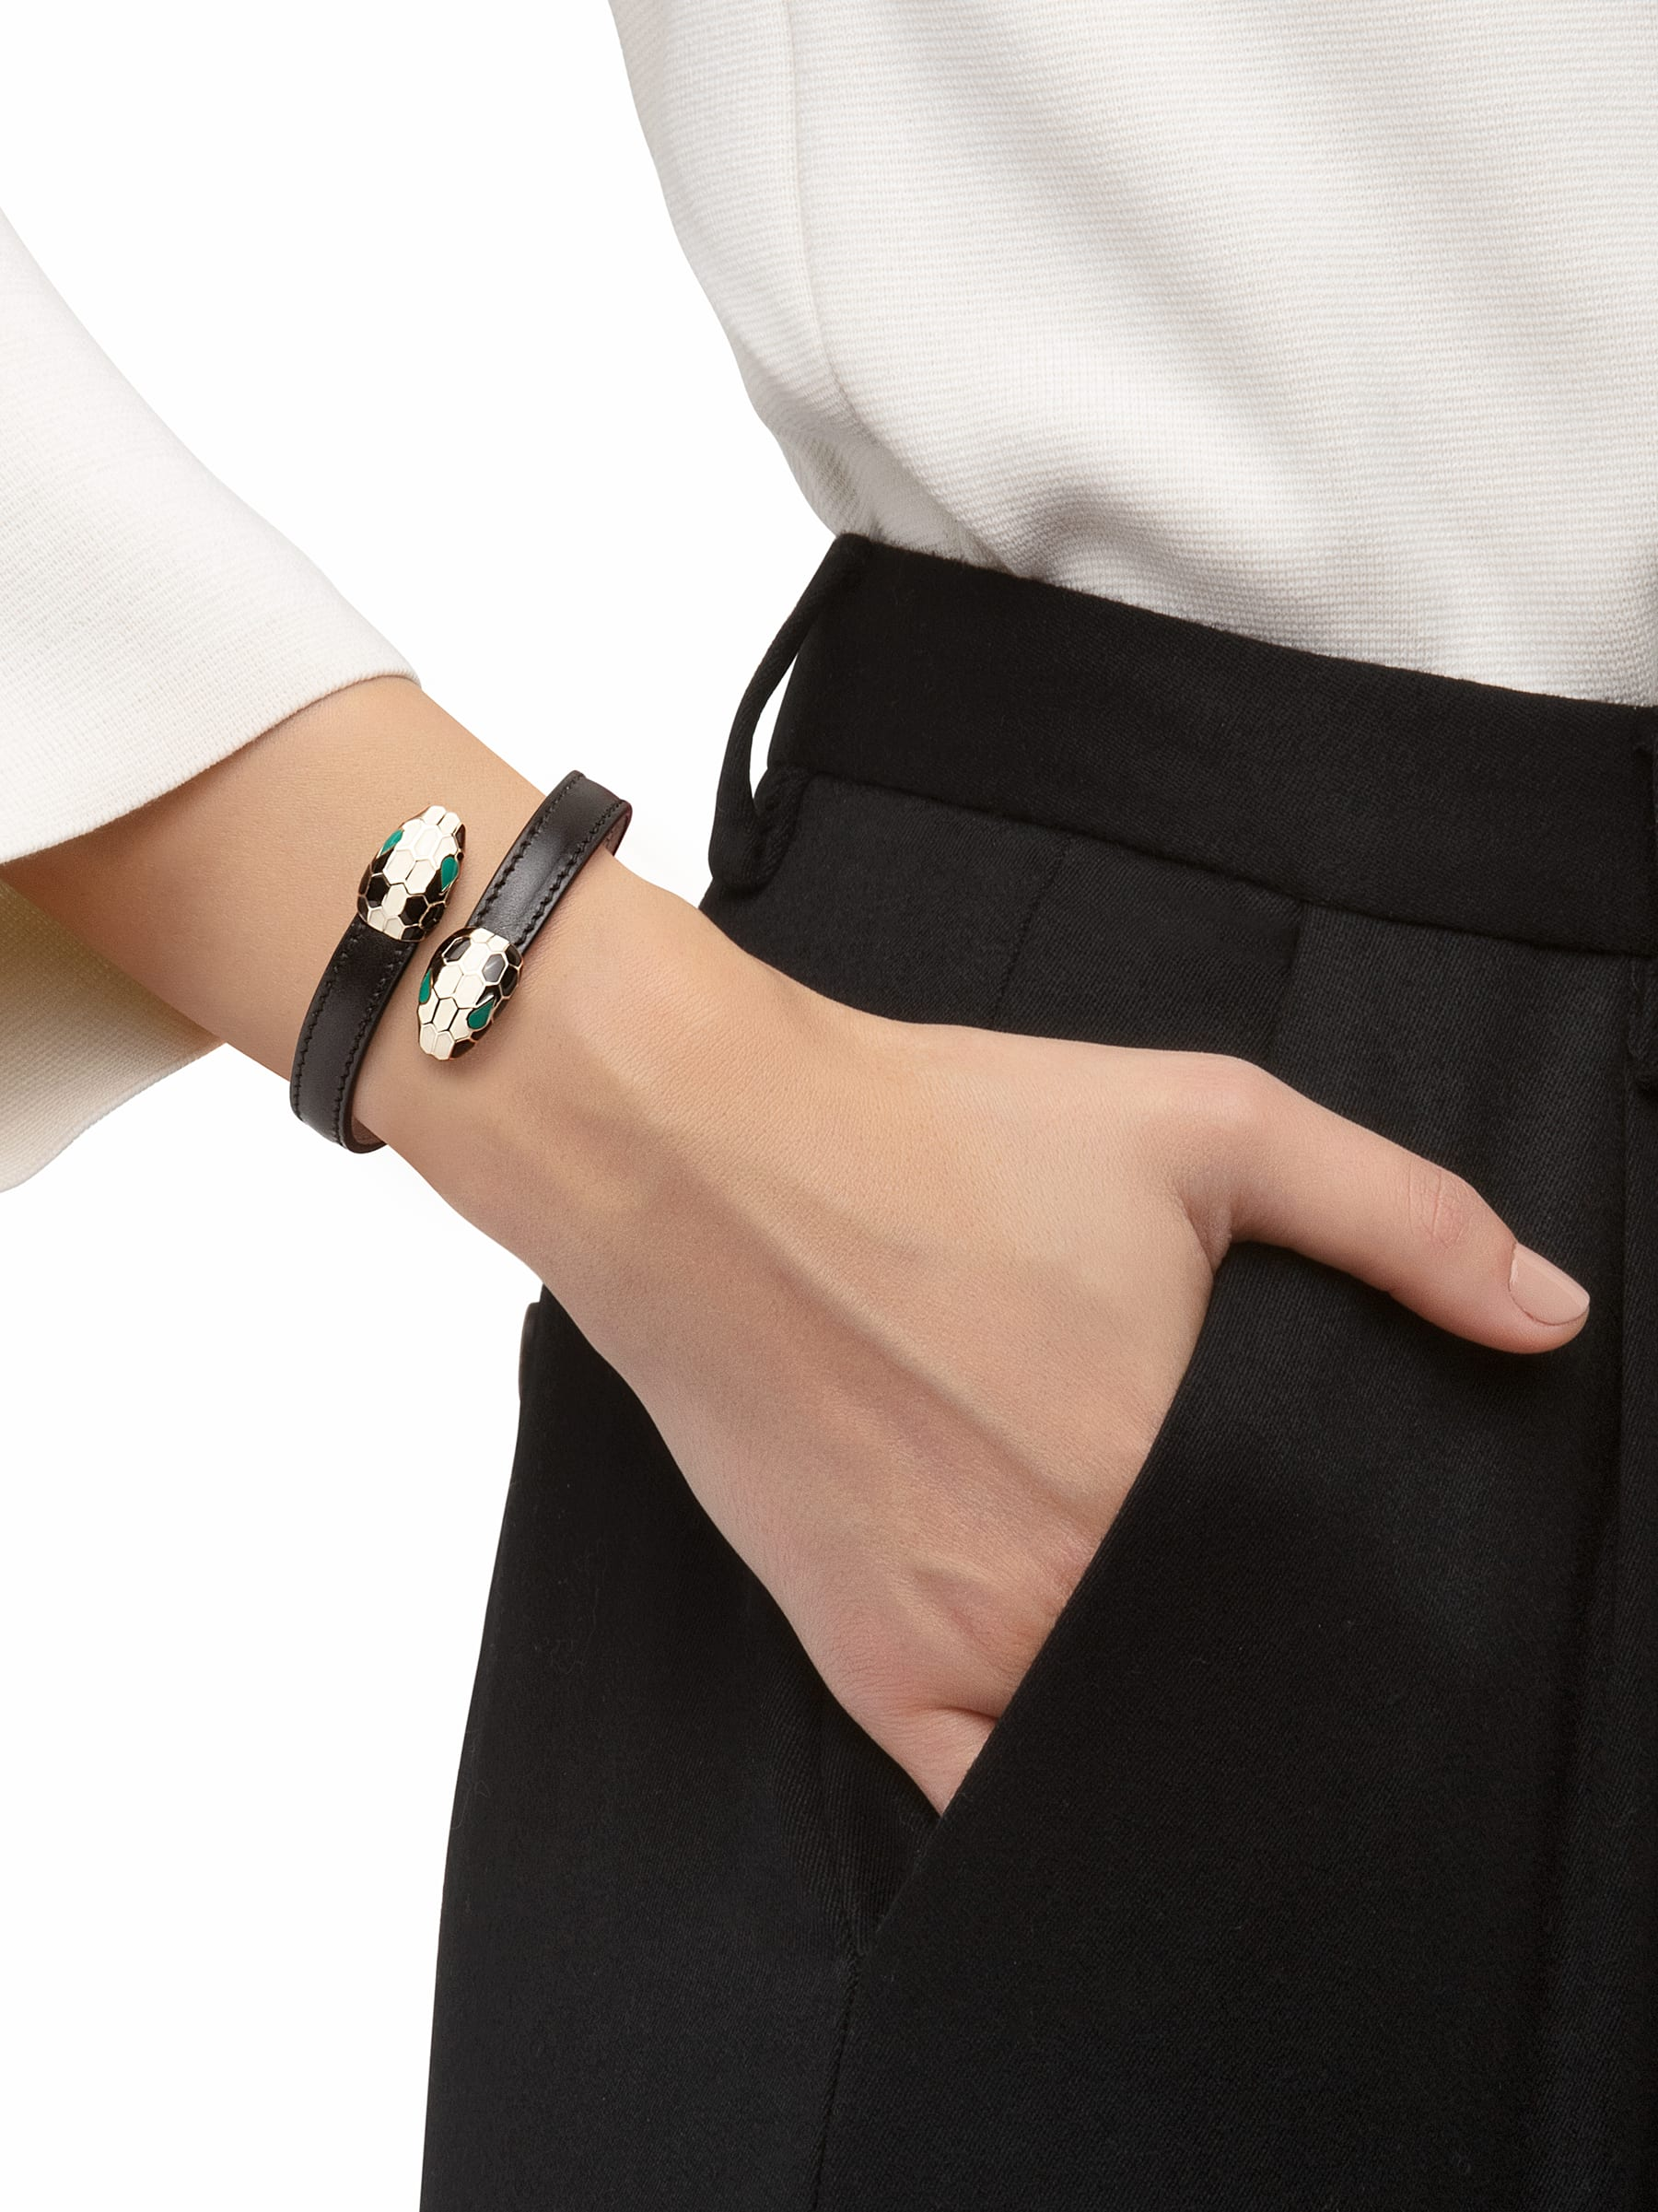 Serpenti Forever soft bangle bracelet in black calf leather, with brass light gold plated hardware. Iconic contraire snakehead décor in black and white enamel, with green enamel eyes. 287398 image 2